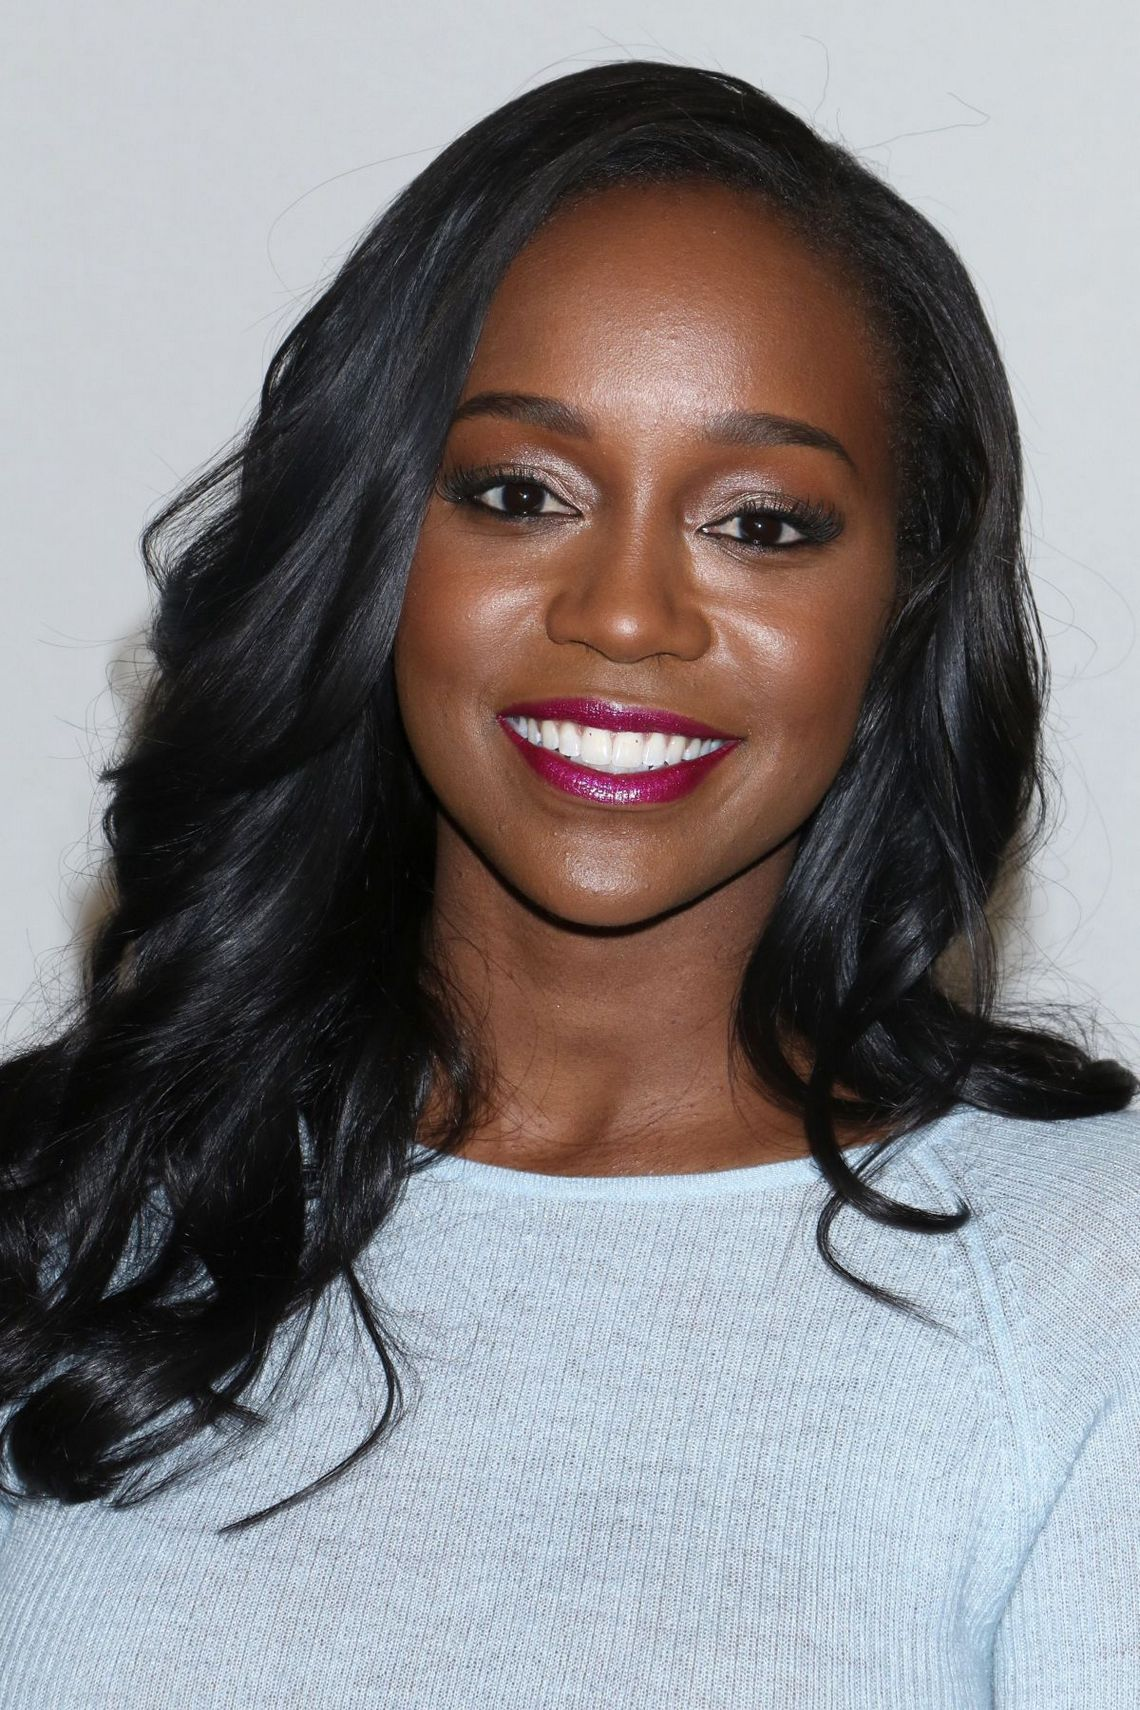 Pictures: Aja Naomi King attends Prabal Gurung Fashion Show at NYFW